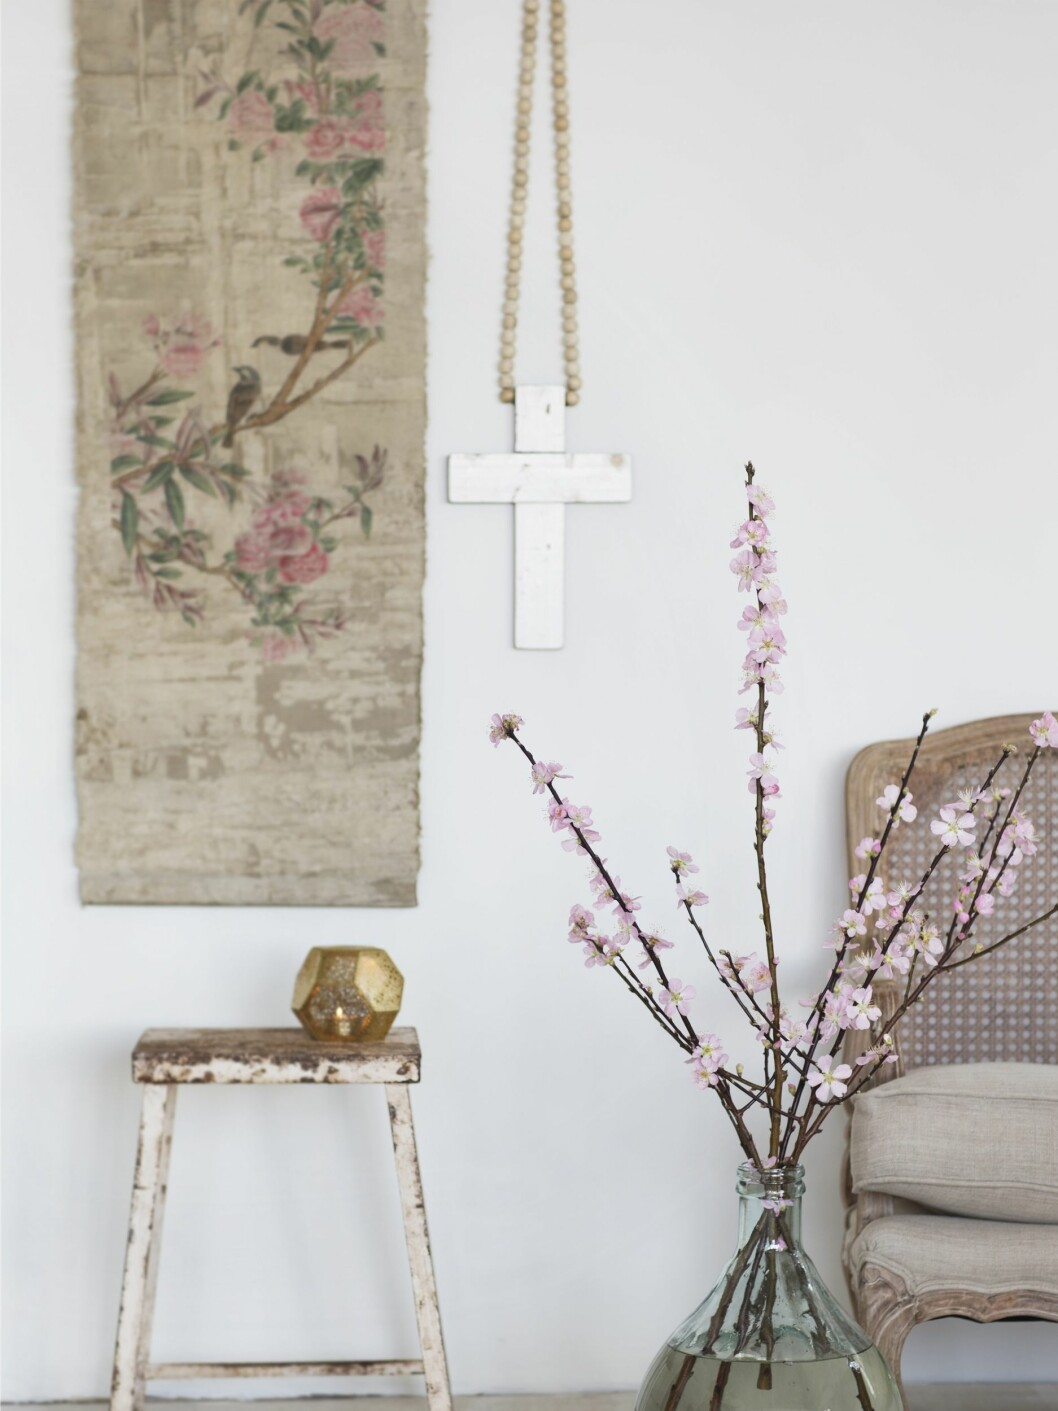 -Kirsebærgreiner med blomster i sart rosa, til telysholder (kr 500, Tom Dixon) og tegning på rull (kr 1800, Anouska). Foto: All Over Press Norway